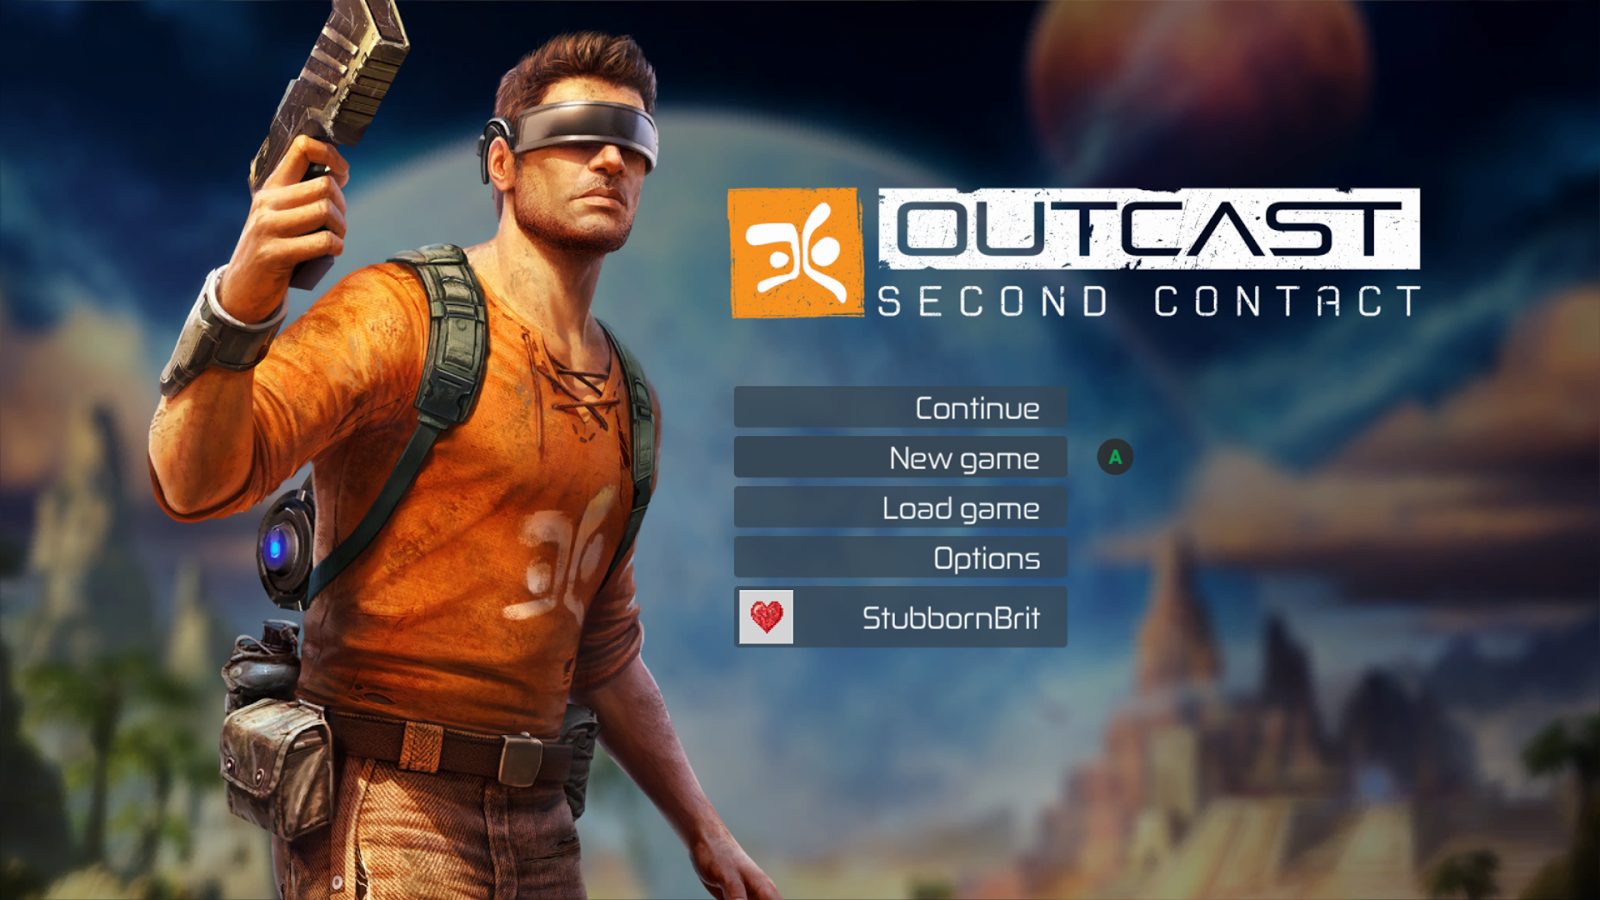 Outcast - Second Contact (Xbox)